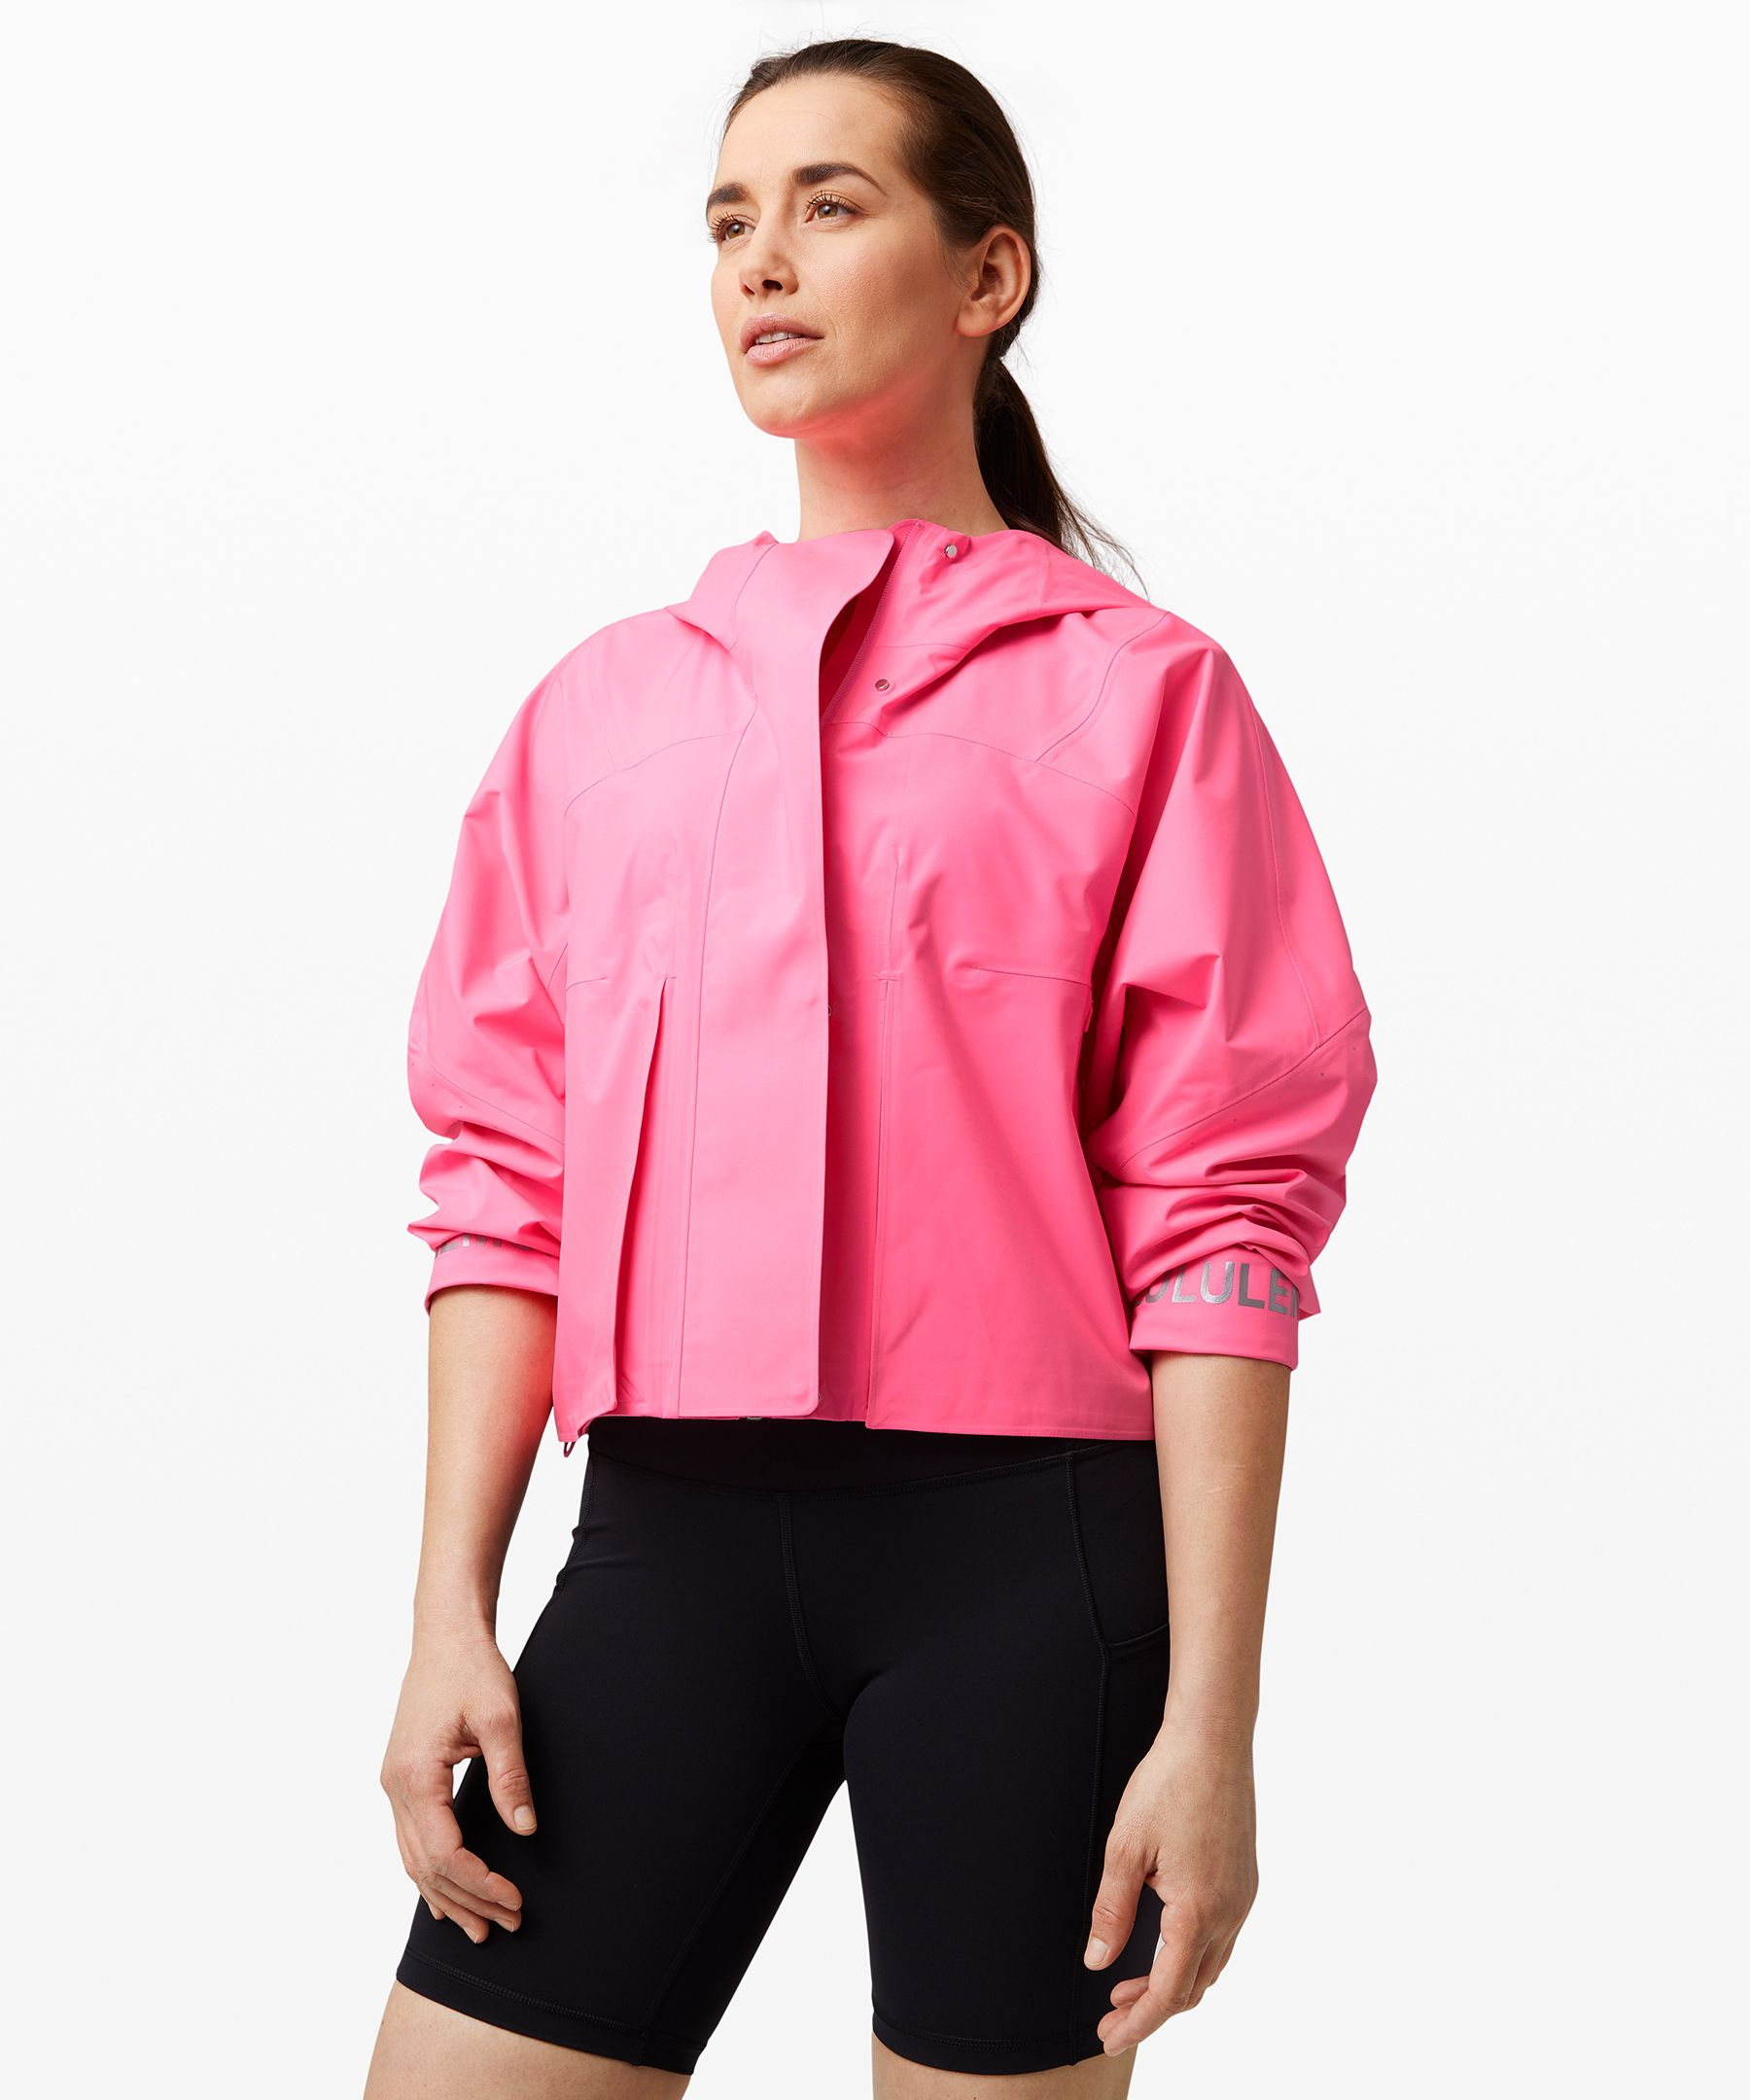 Whether you\\\'re running a  casual 5k or just running  errands, this cropped jacket  gives you room to move with  style to spare. Waterproof  fabric keeps you protected  from light rain while  perforated vents help keep  things breathable when your  pace picks up.